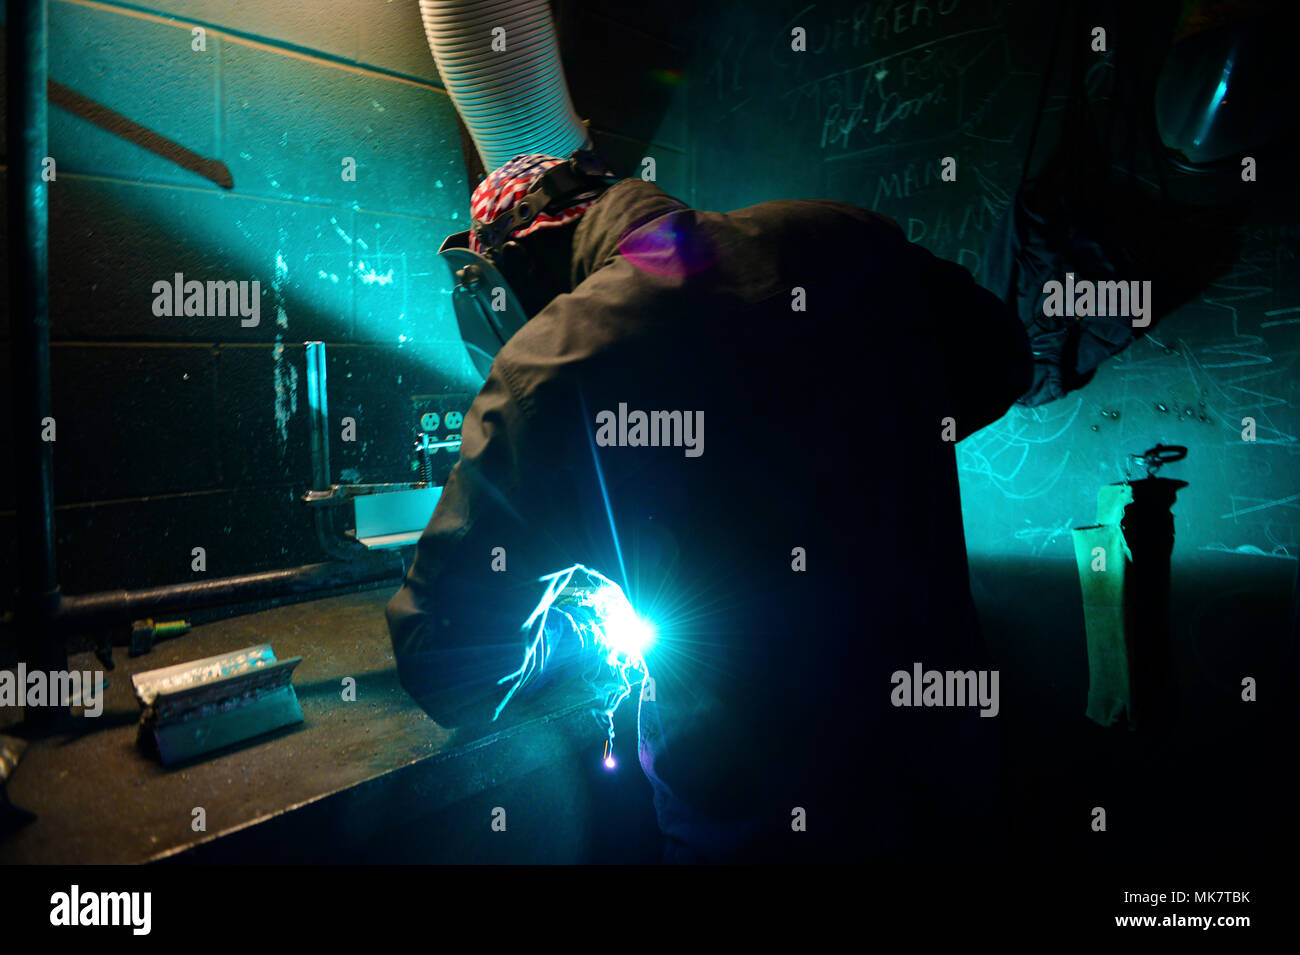 A student from Africa practices welding as part of the Lake Chad Basin Initiative, Nov. 15, 2017 at the Naval Small Craft Instruction and Technical Training School on Stennis Space Center, Miss. NAVSCIATTS is working through the Trans-Sahara Counterterrorism Partnership to facilitate the inaugural iteration of the Lake Chad Basin Initiative. The objective of the iteration is to increase partner nations' abilities to project force against violent extremist organization safe havens within the Lake Chad region using continental United States based maintenance and leadership training prior to the  - Stock Image